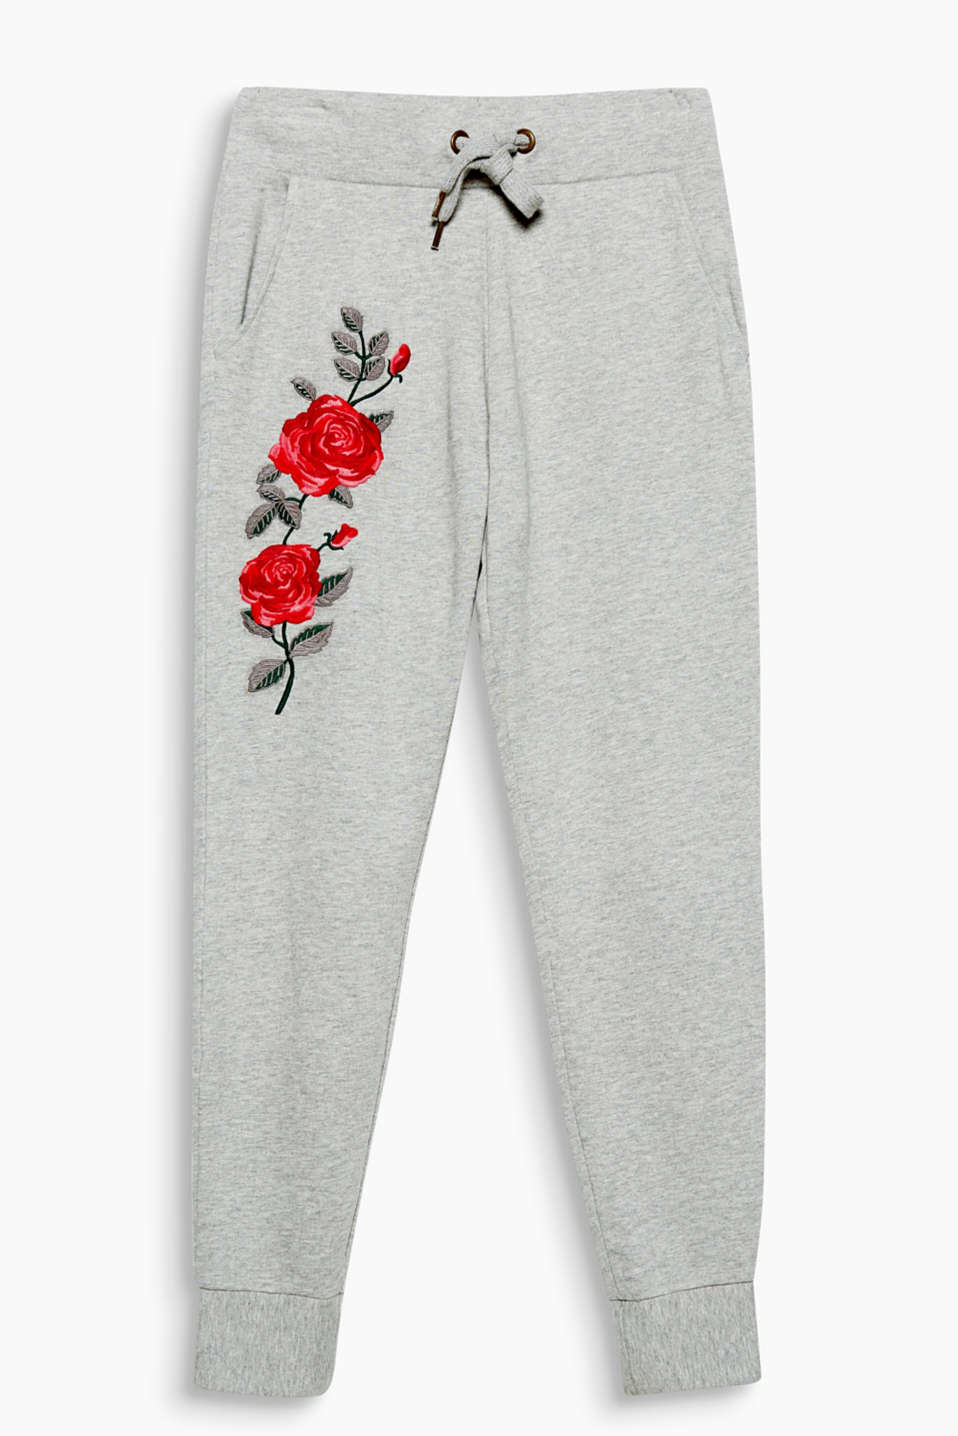 See how pretty the new sportswear can be: melange tracksuit bottoms with elaborate rose embroidery